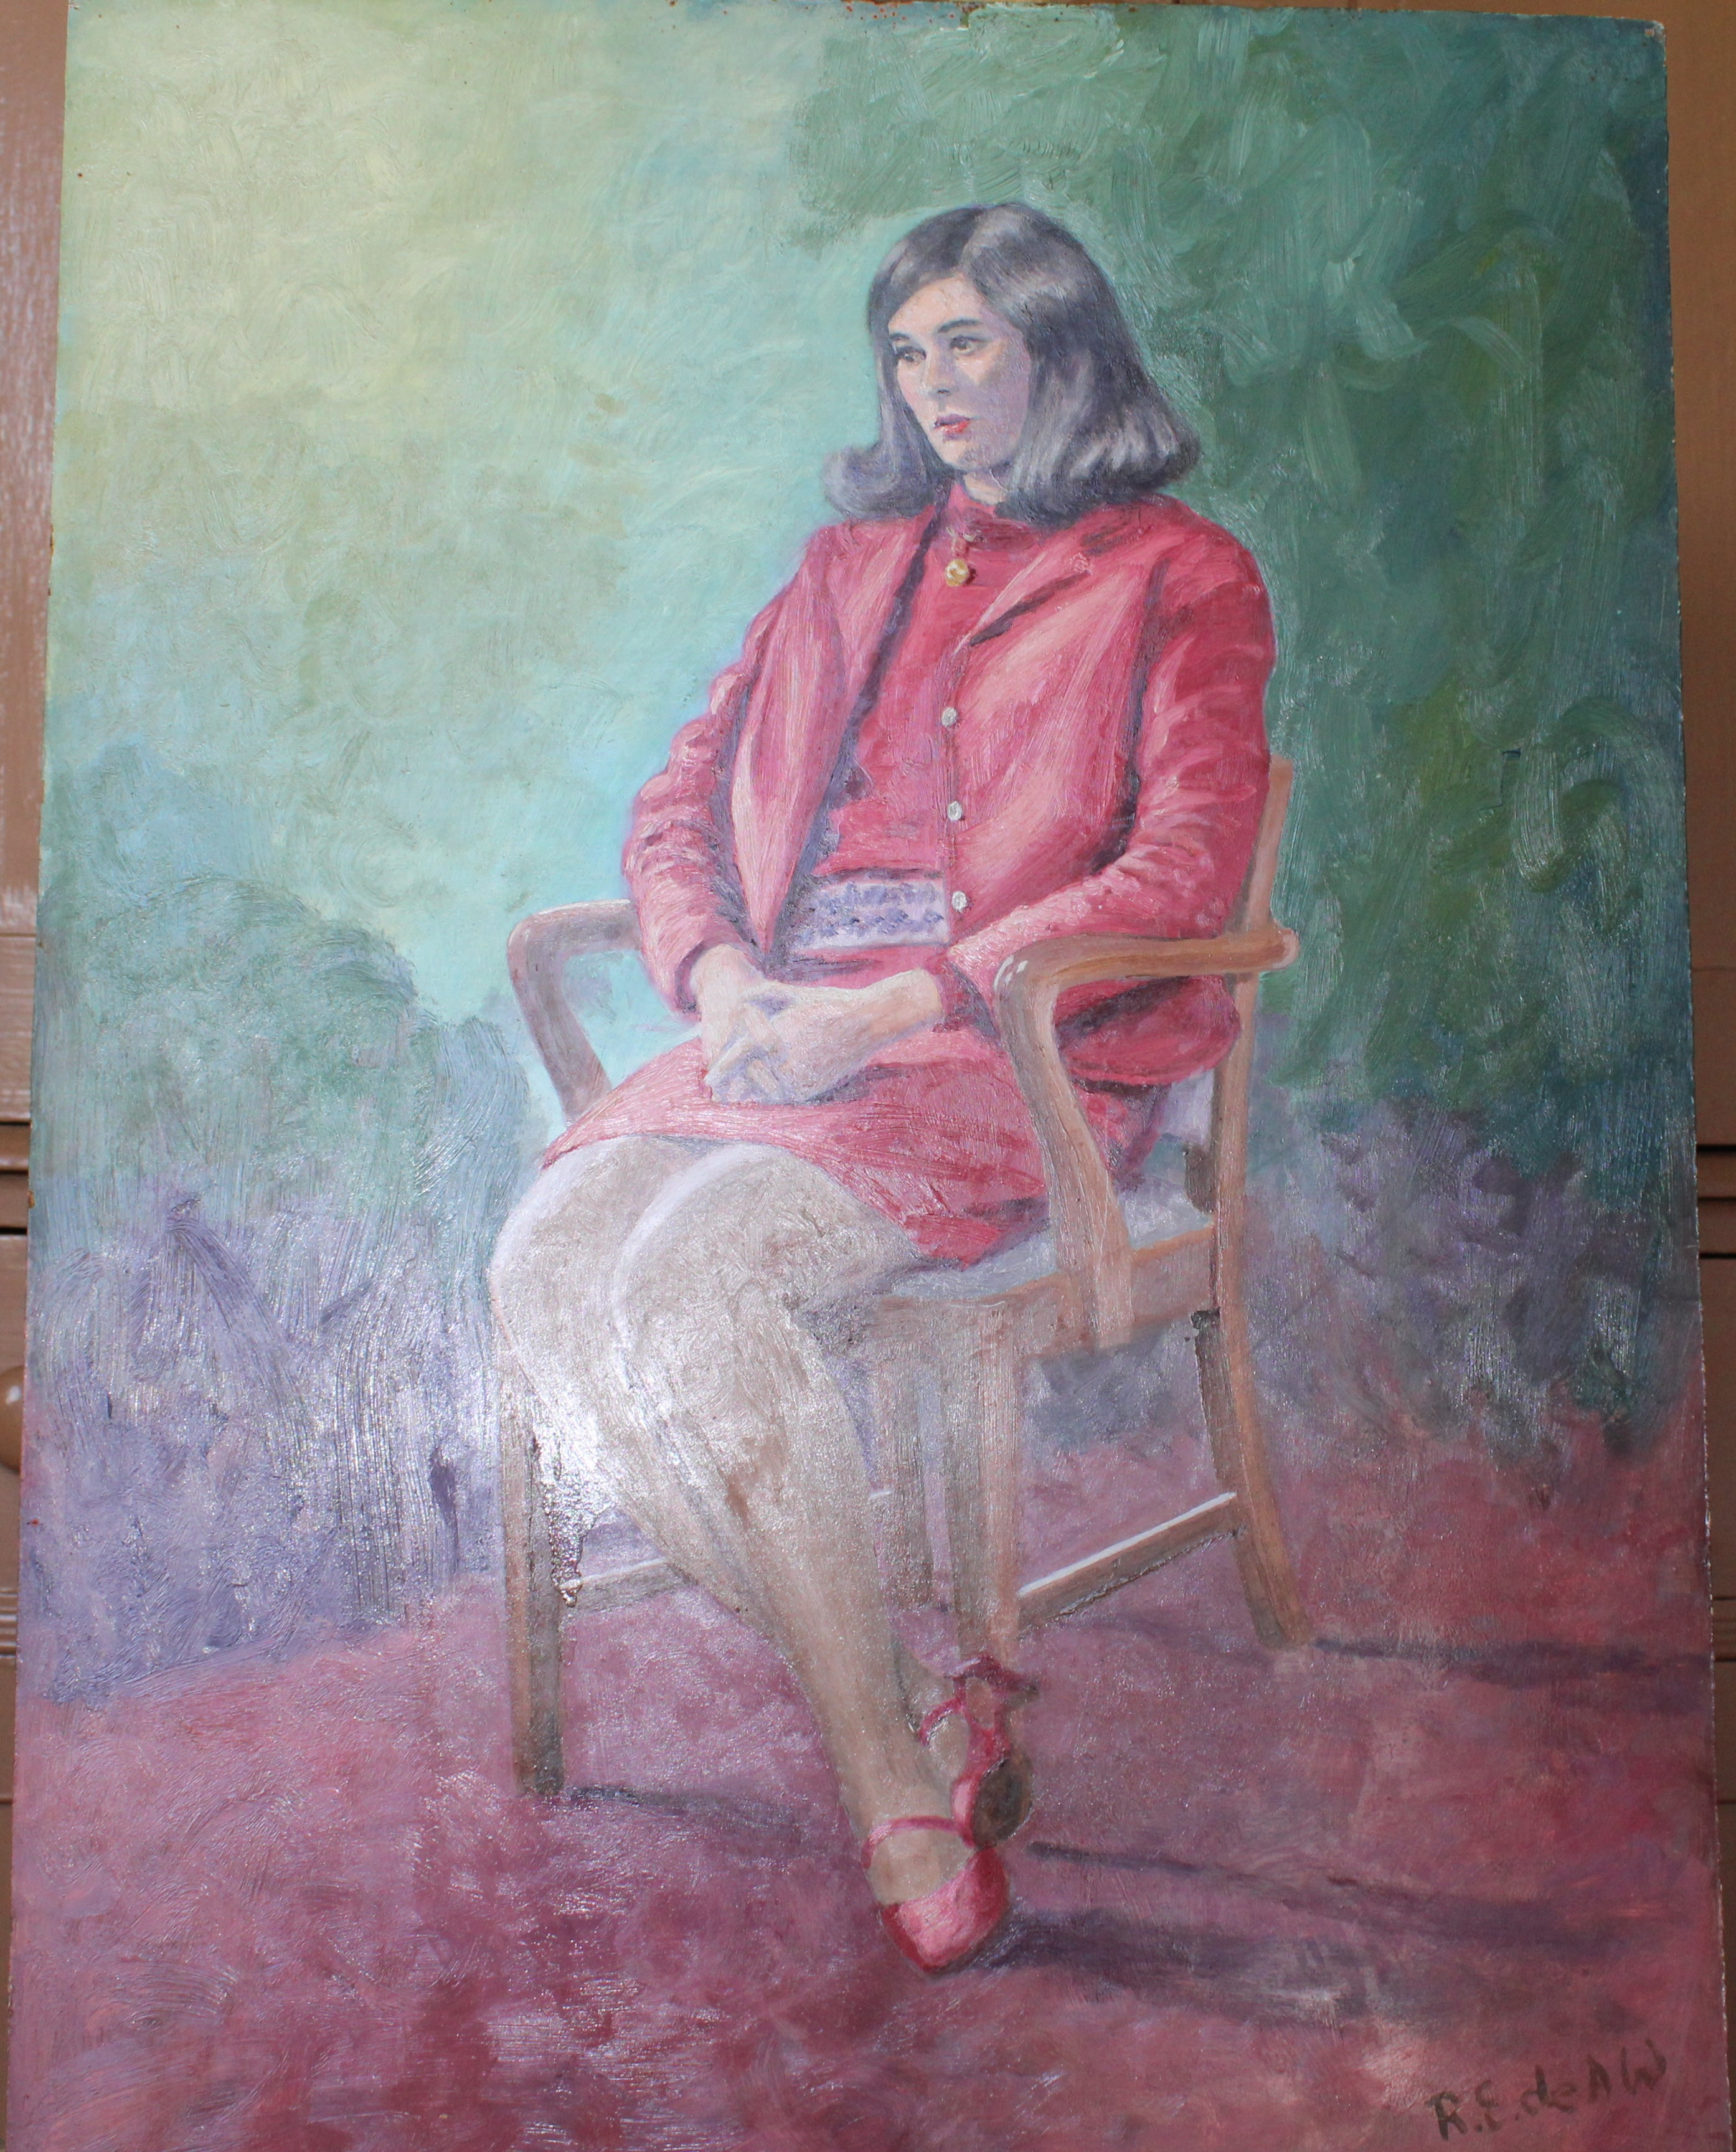 •DAY DREAM, WOMAN SEATED WEARING RED JACKET AND DRESS Signed unframed oil on board, 60 x 44.3cm,